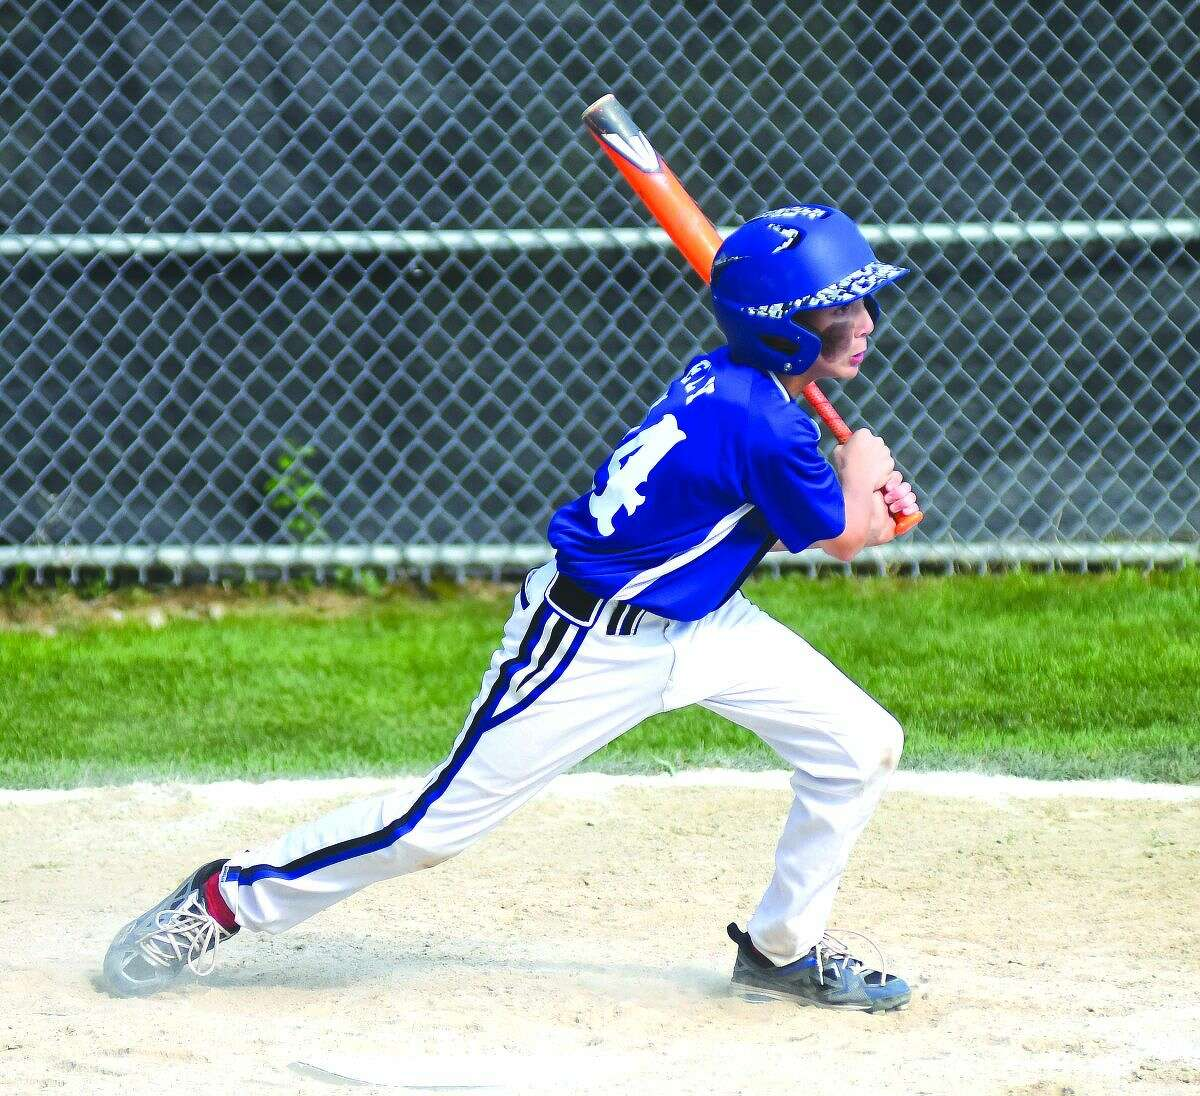 Norwalk's Chris Ely laces a two-run double with the bases loaded during Sunday's Norwalk 11-year-old Cal Ripken New England regional game vs. Swanzey, N.H.., at Keyes Field in Dover, N.H. Norwalk won 5-2 and Ely is 4-for-4 with seven RBIs with the bases loaded through two games.